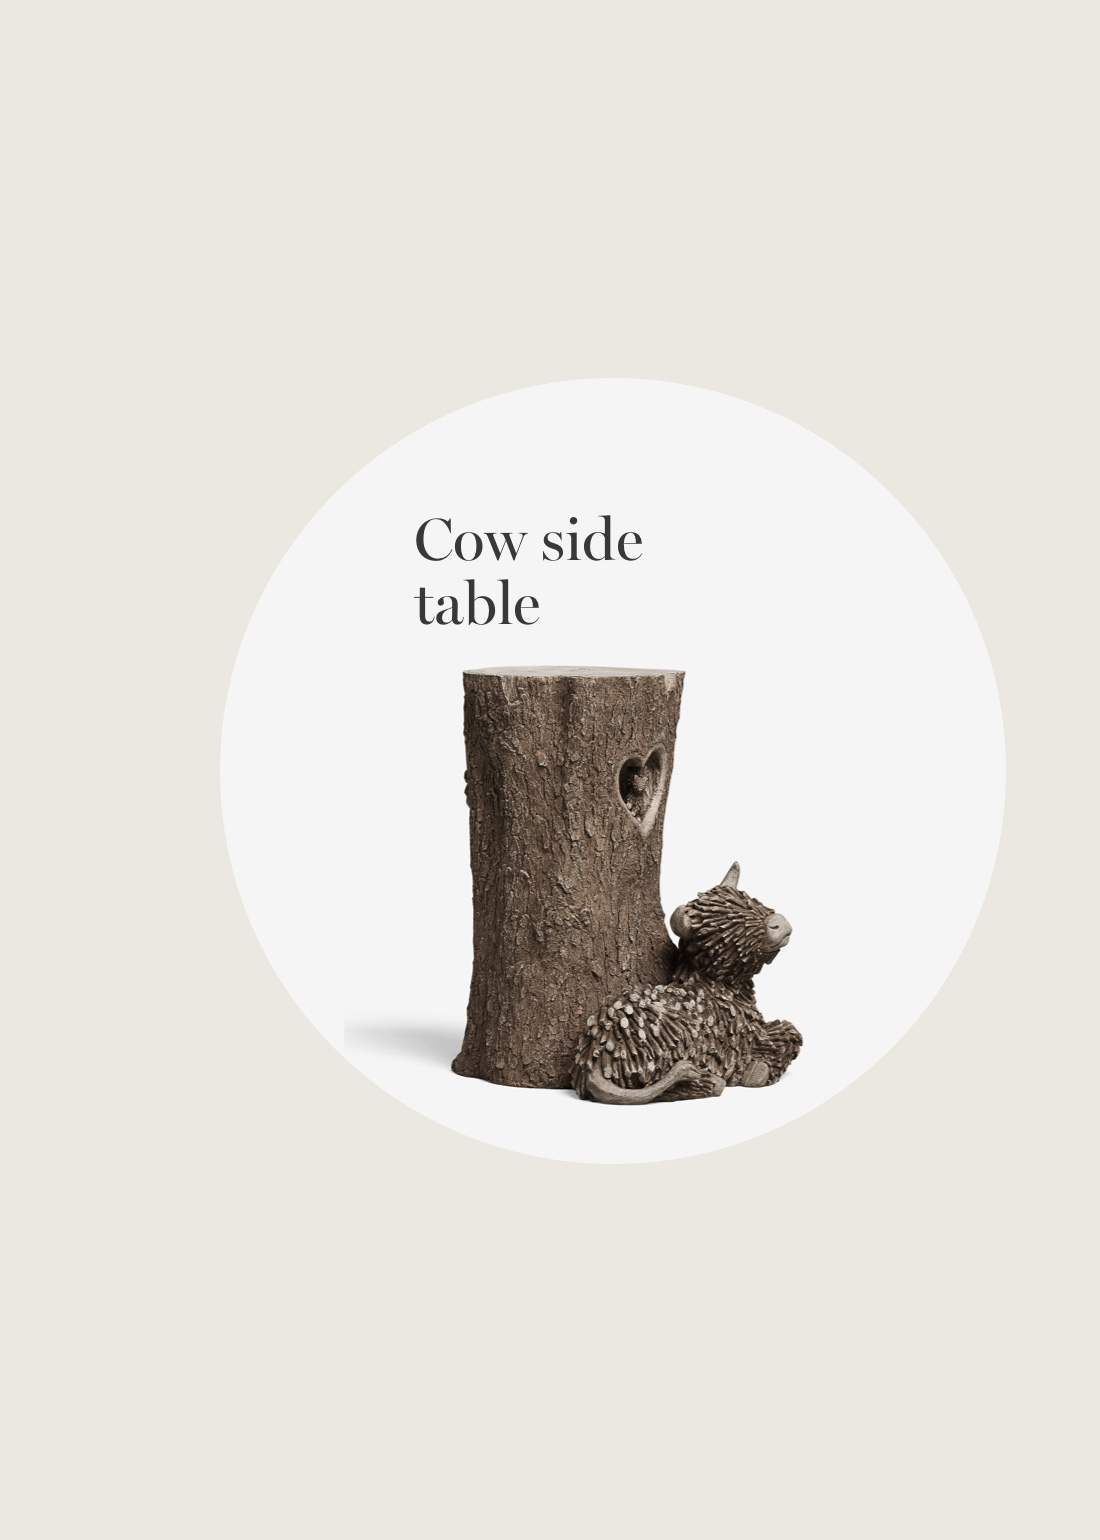 Cow side table